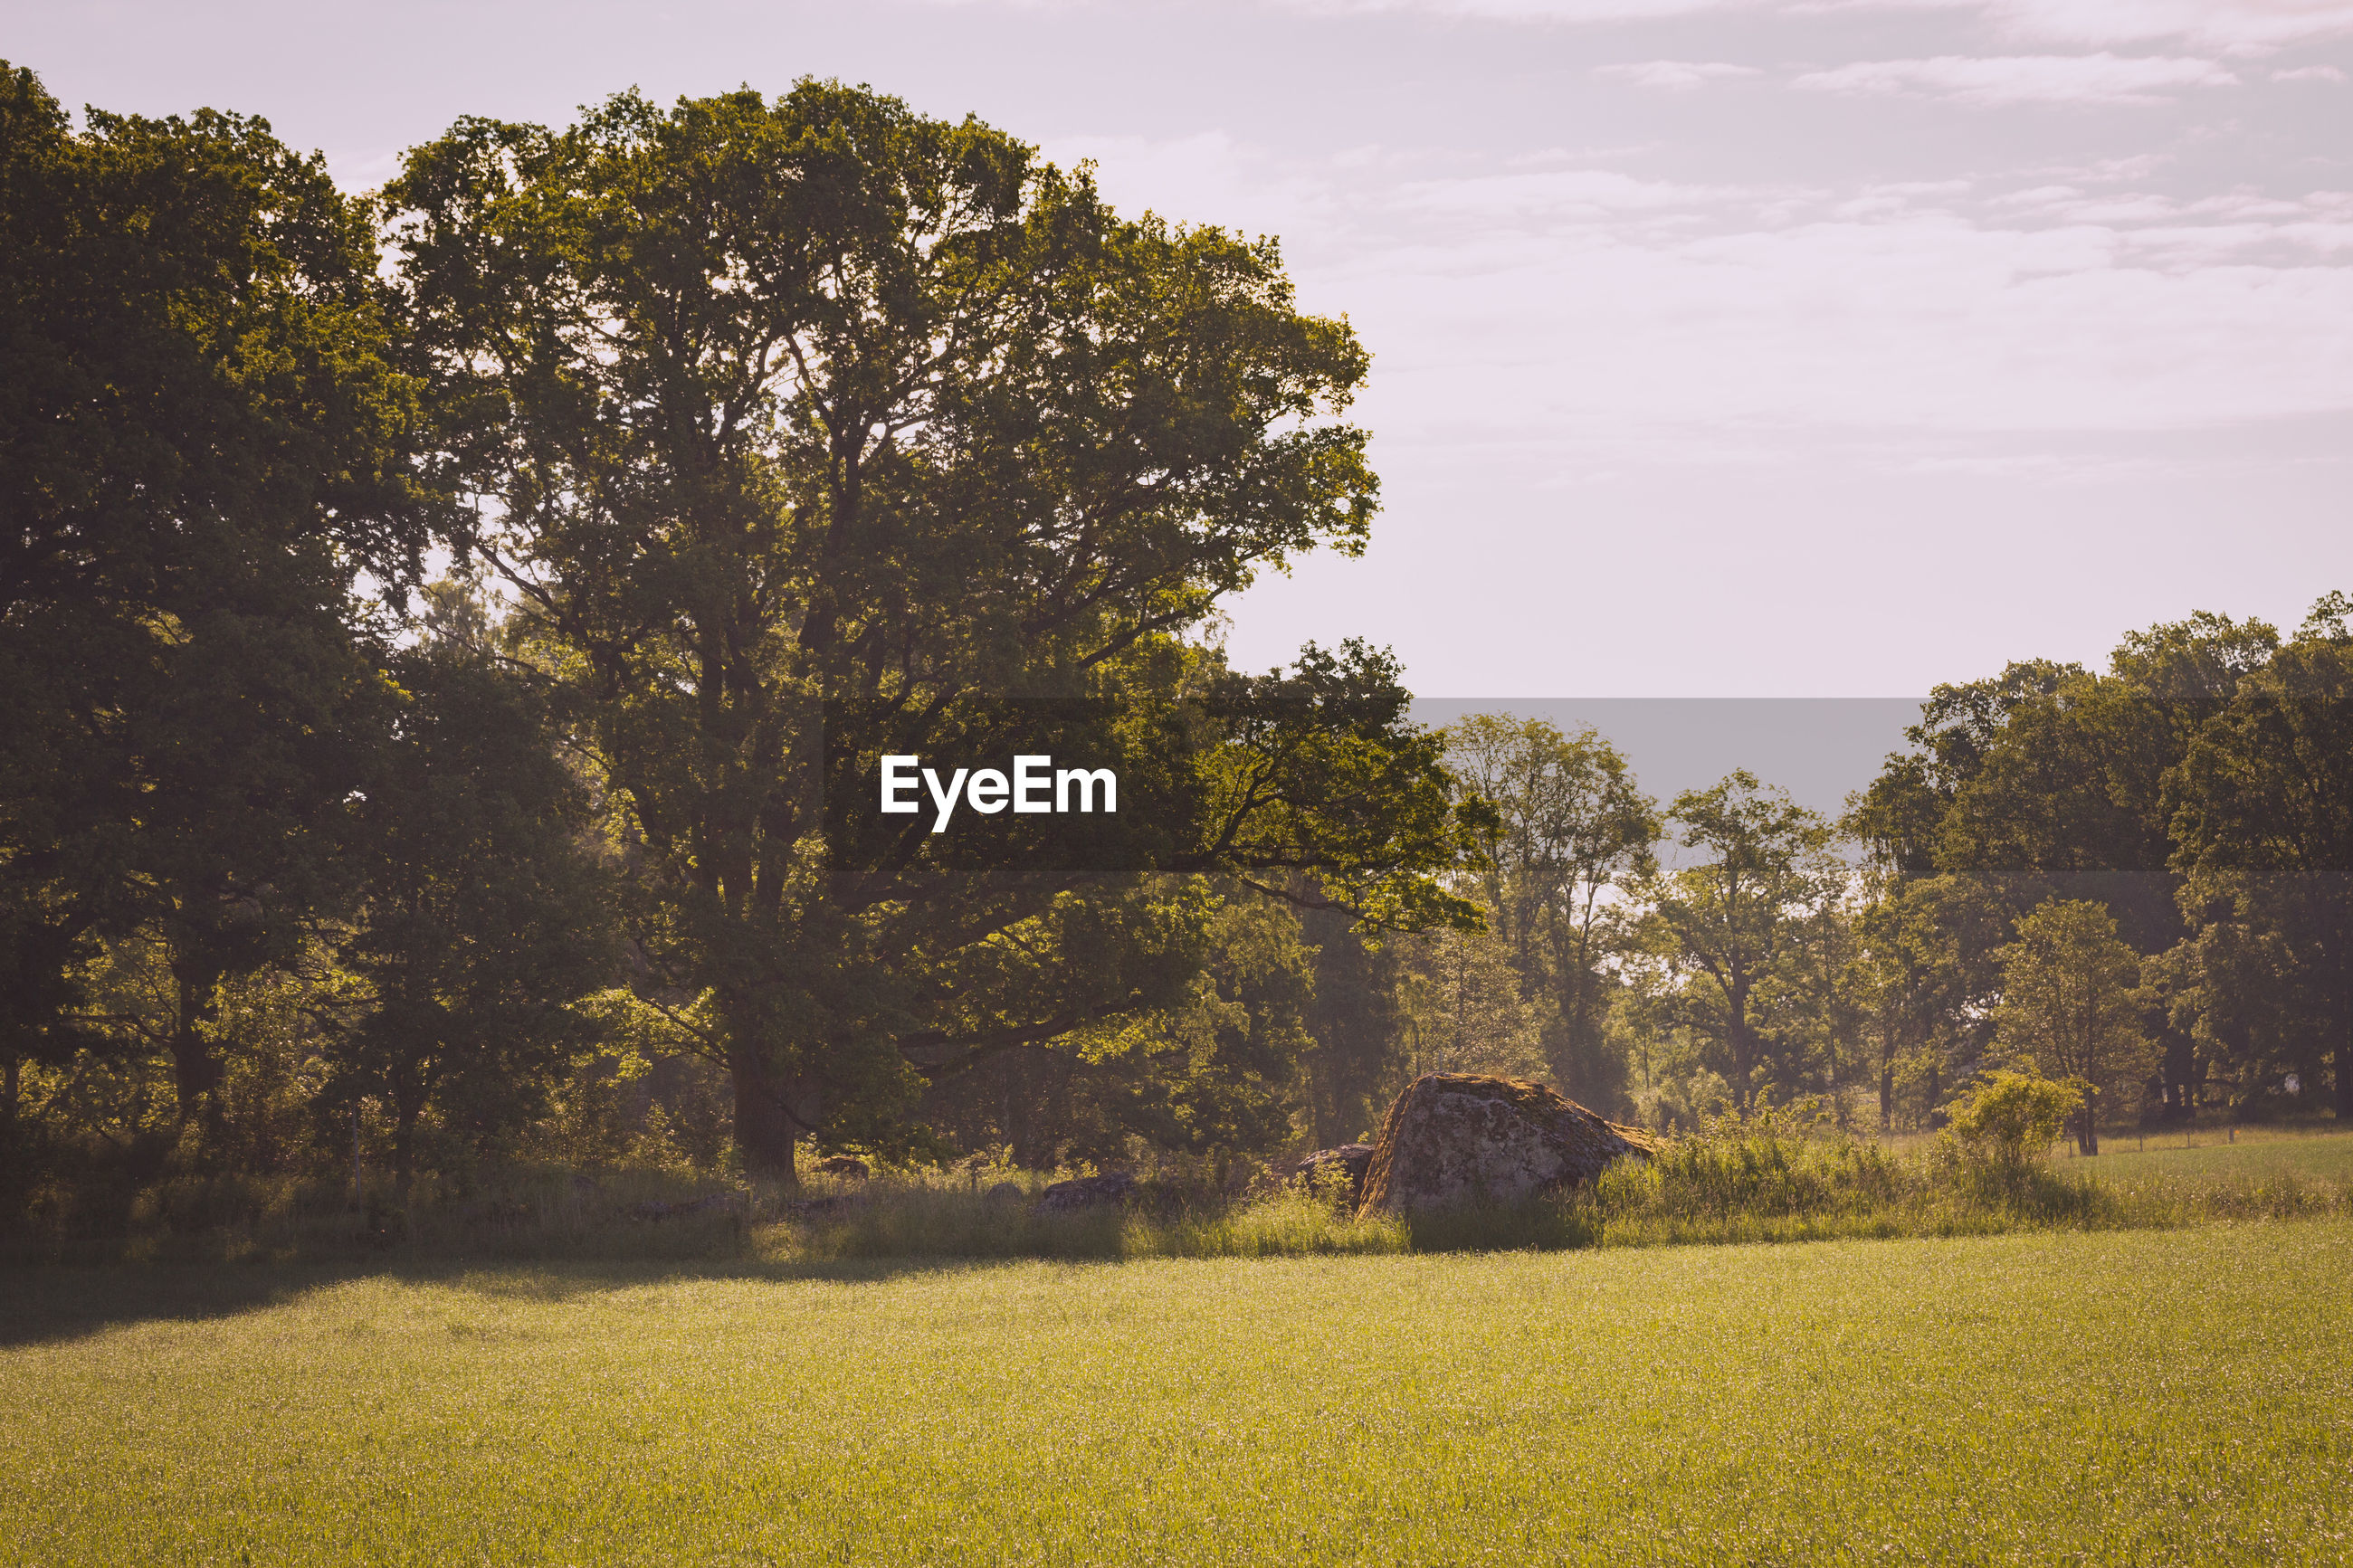 SCENIC VIEW OF FIELD AND TREES